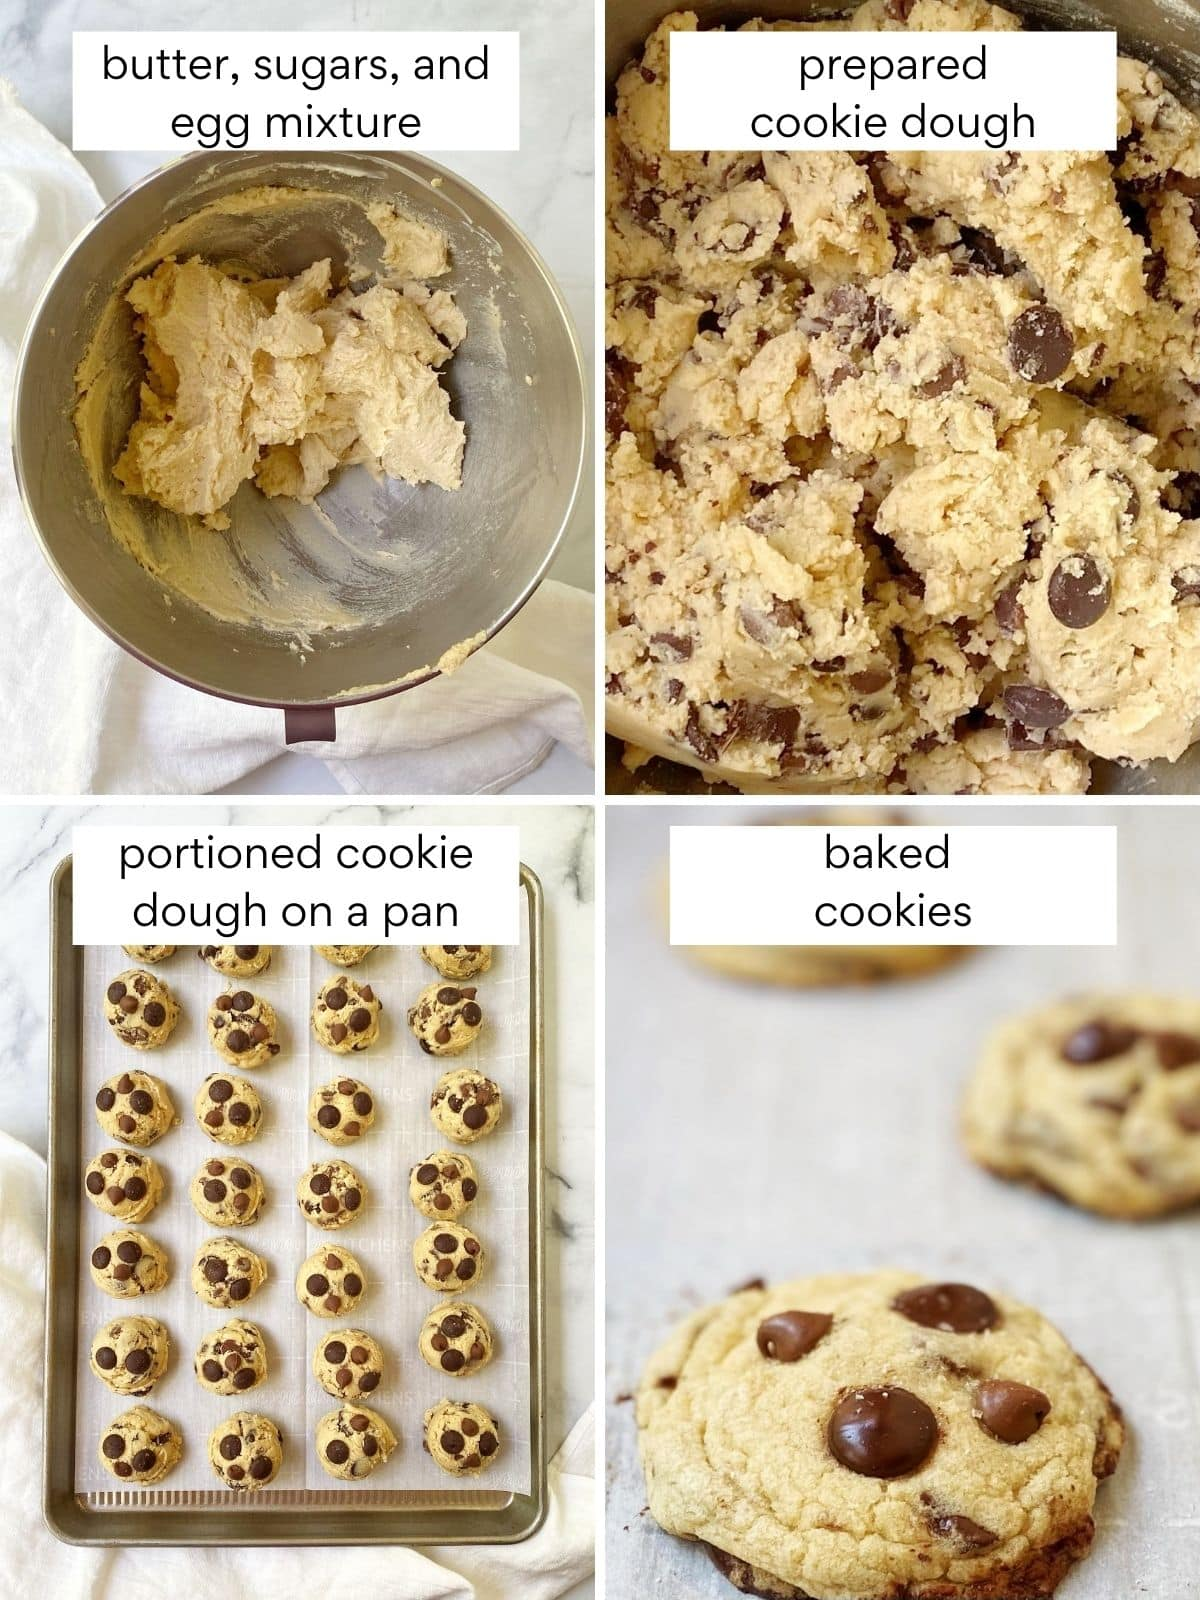 process photos: butter, sugar, eggs creamed togehter, prepared dough, dough portioned onto a baking sheet, and baked cookies on a sheet pan